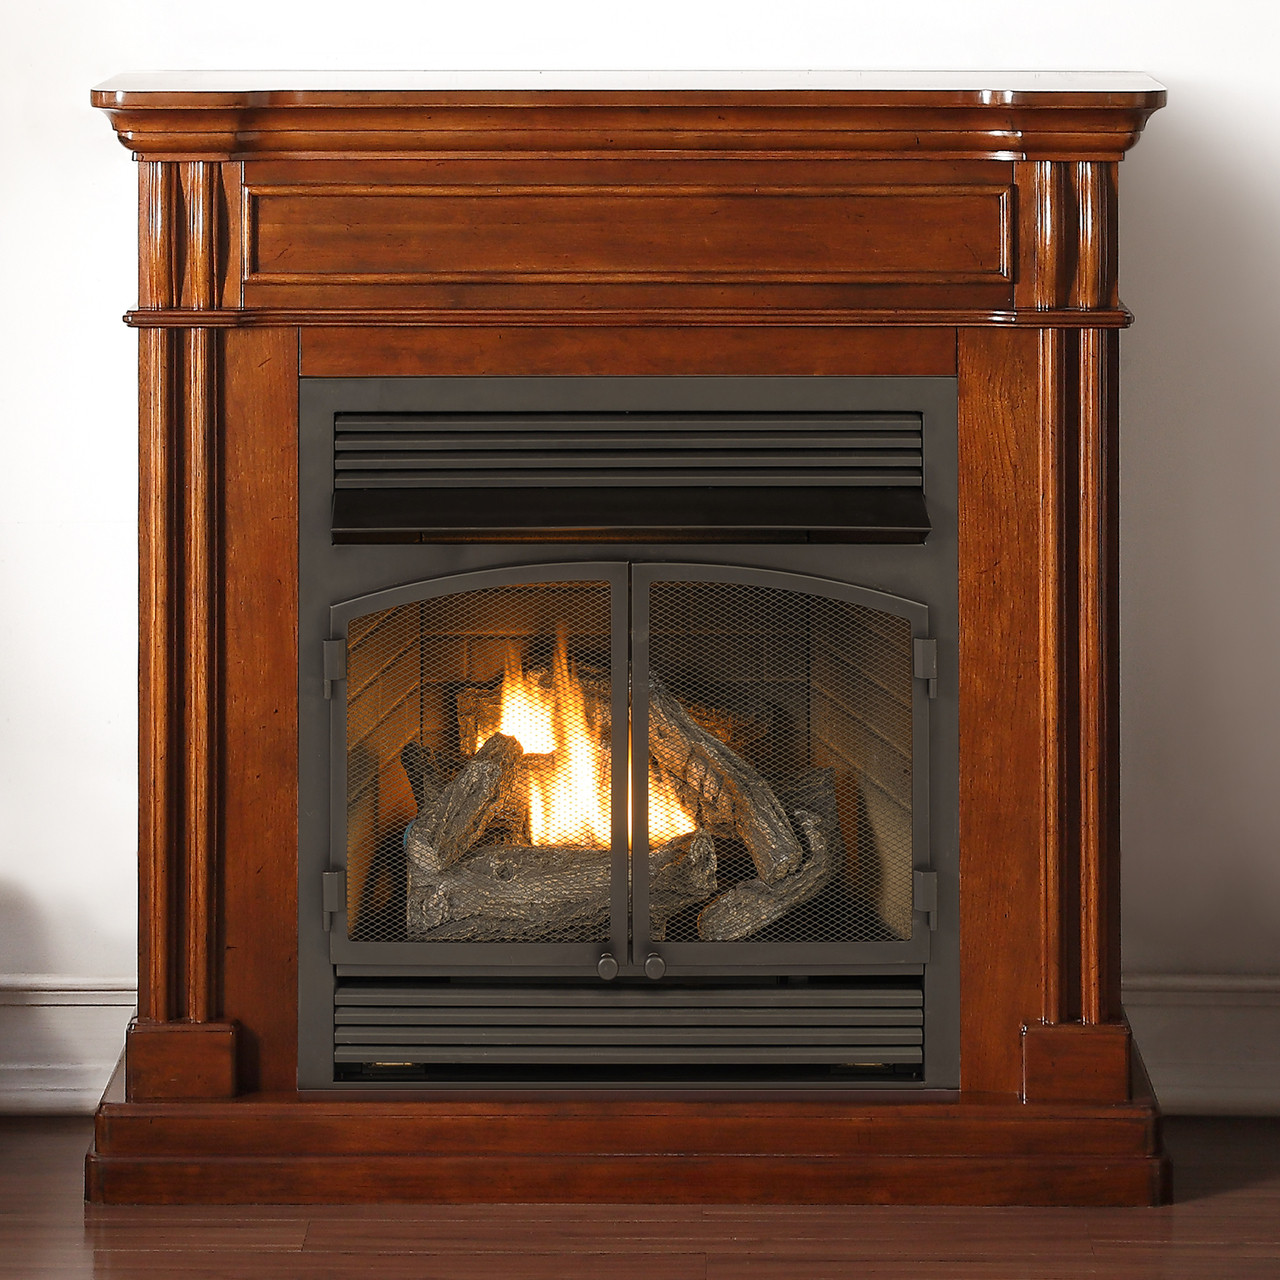 Super Duluth Forge Dual Fuel Ventless Fireplace 32 000 Btu Remote Control Autumn Spice Finish Beutiful Home Inspiration Truamahrainfo